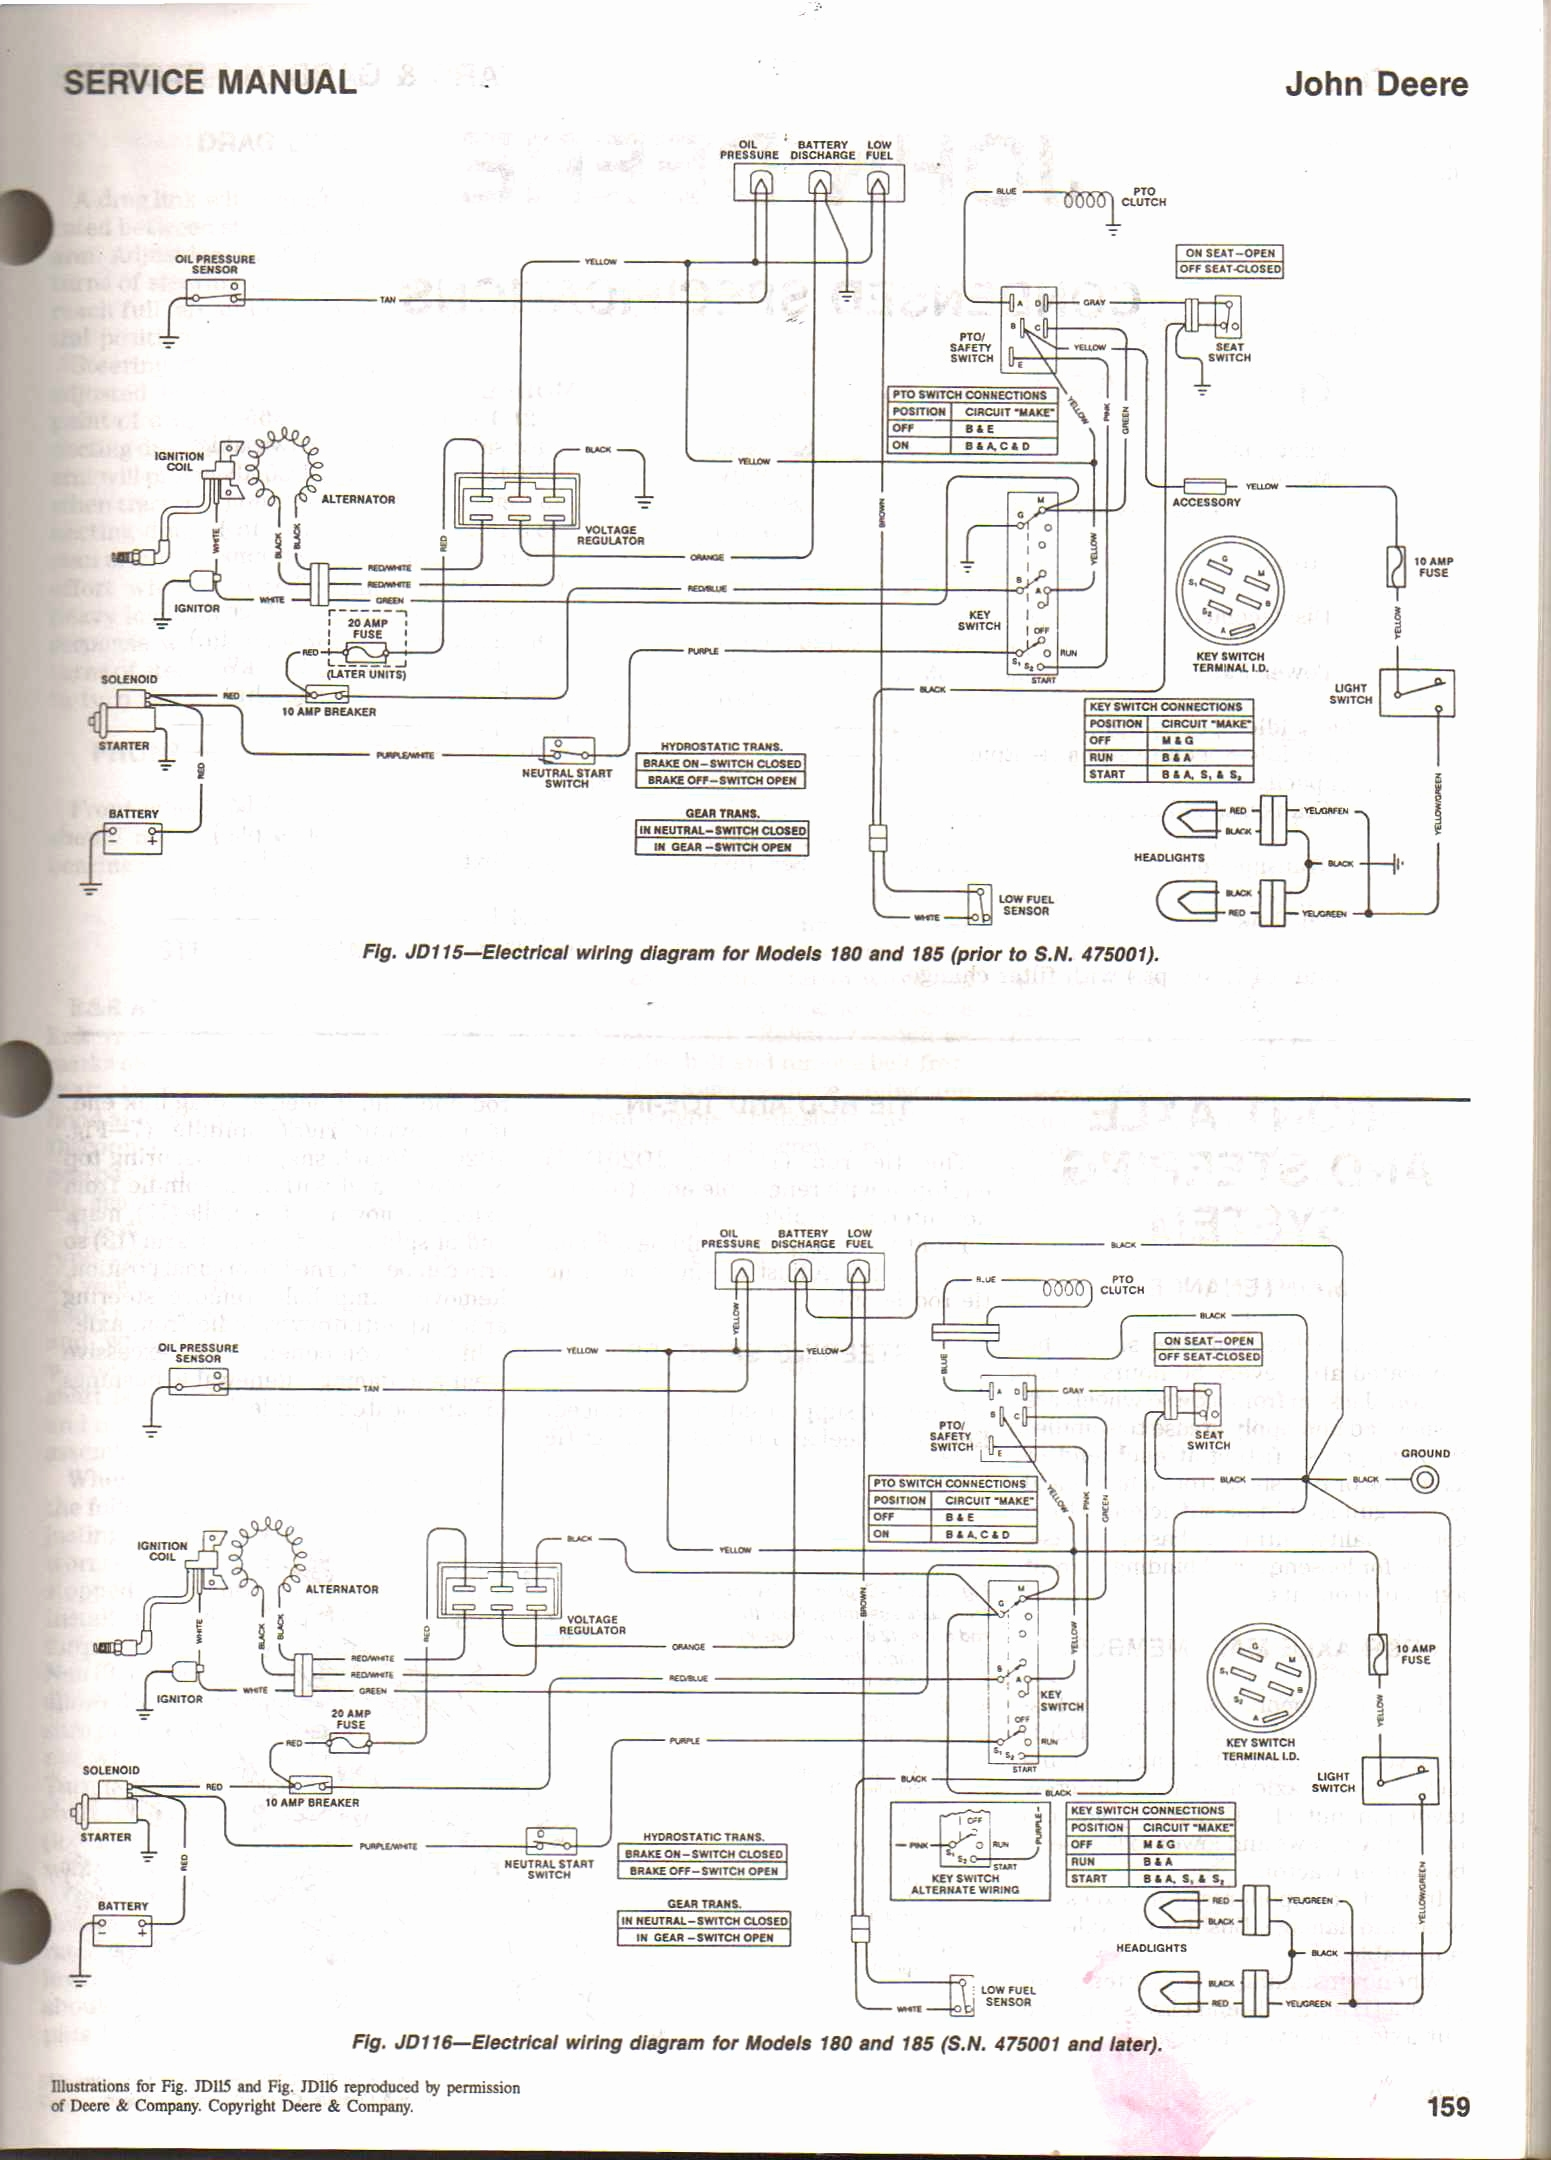 john deere l130 wiring diagram | free wiring diagram john deere l130 mower wiring diagram l130 wiring diagram